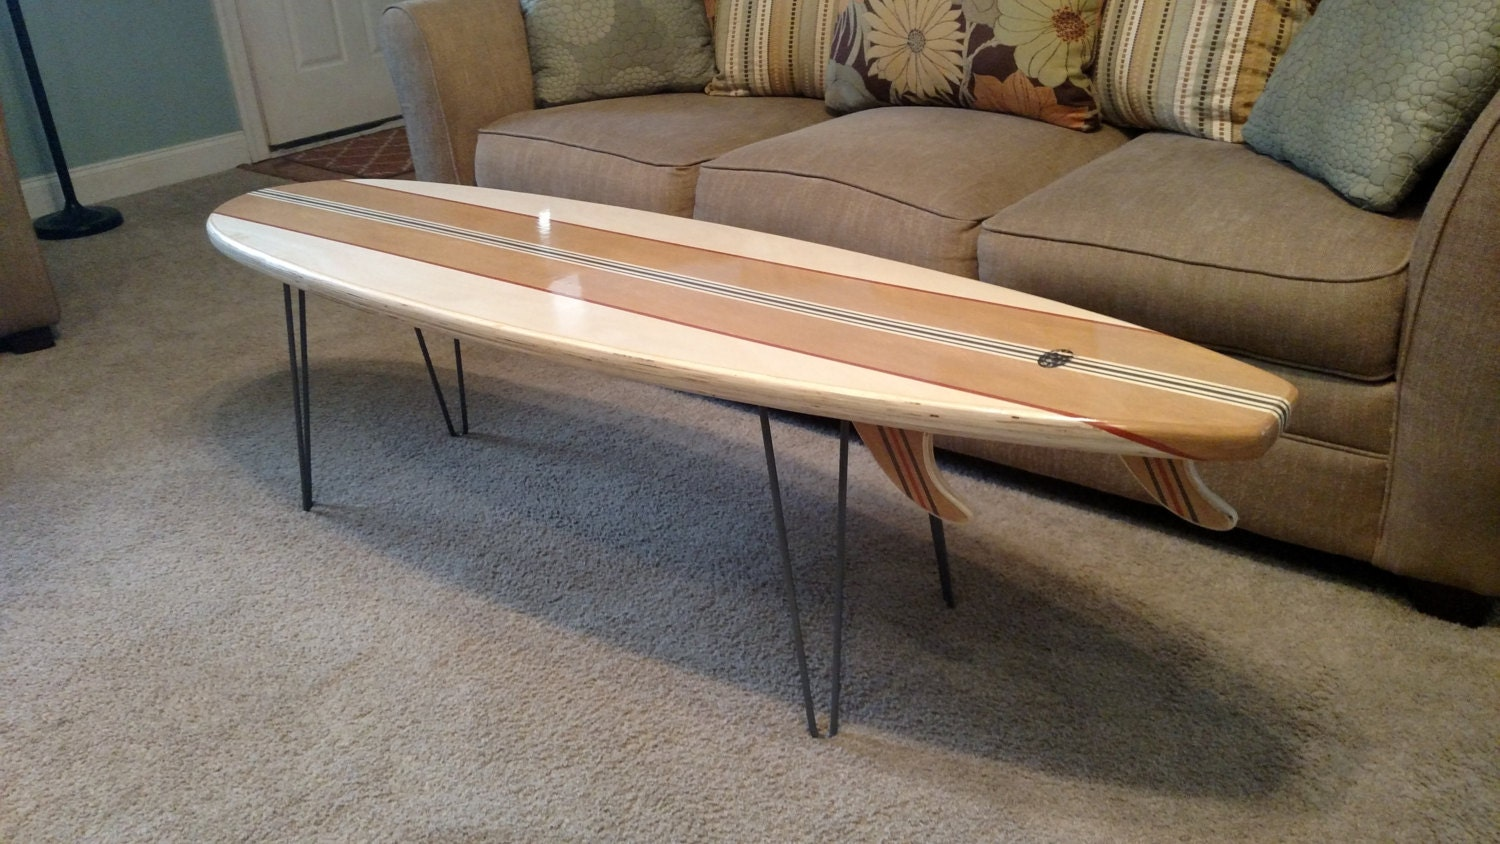 5 Ft To 8 Ft. Surfboard Coffee Table Sofa Table Couch Table